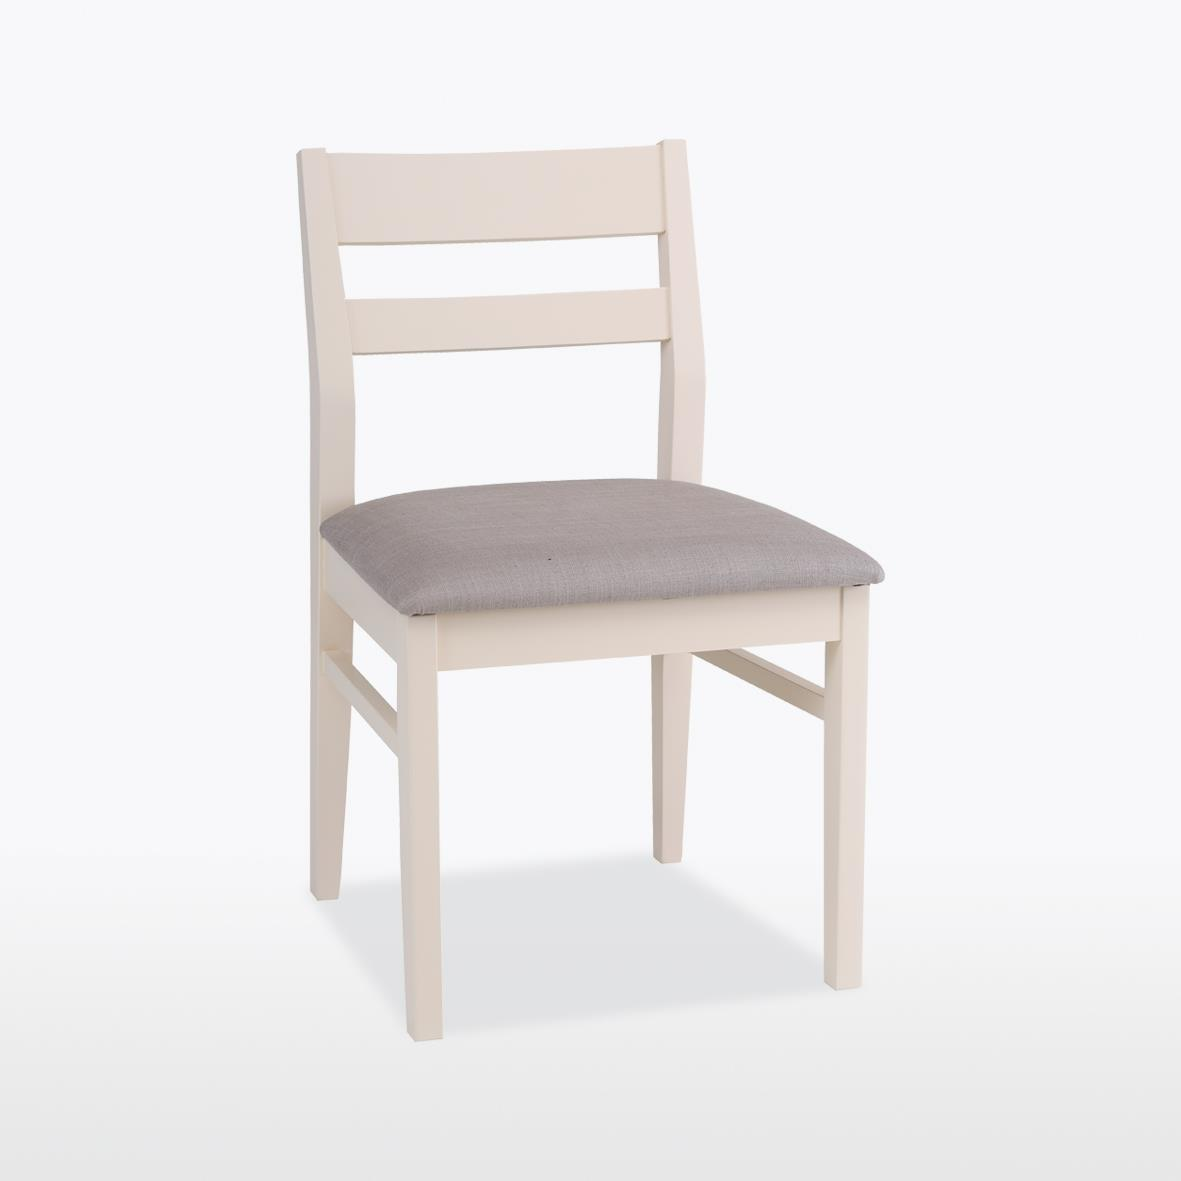 Coelo - Rome - Low Back Chair